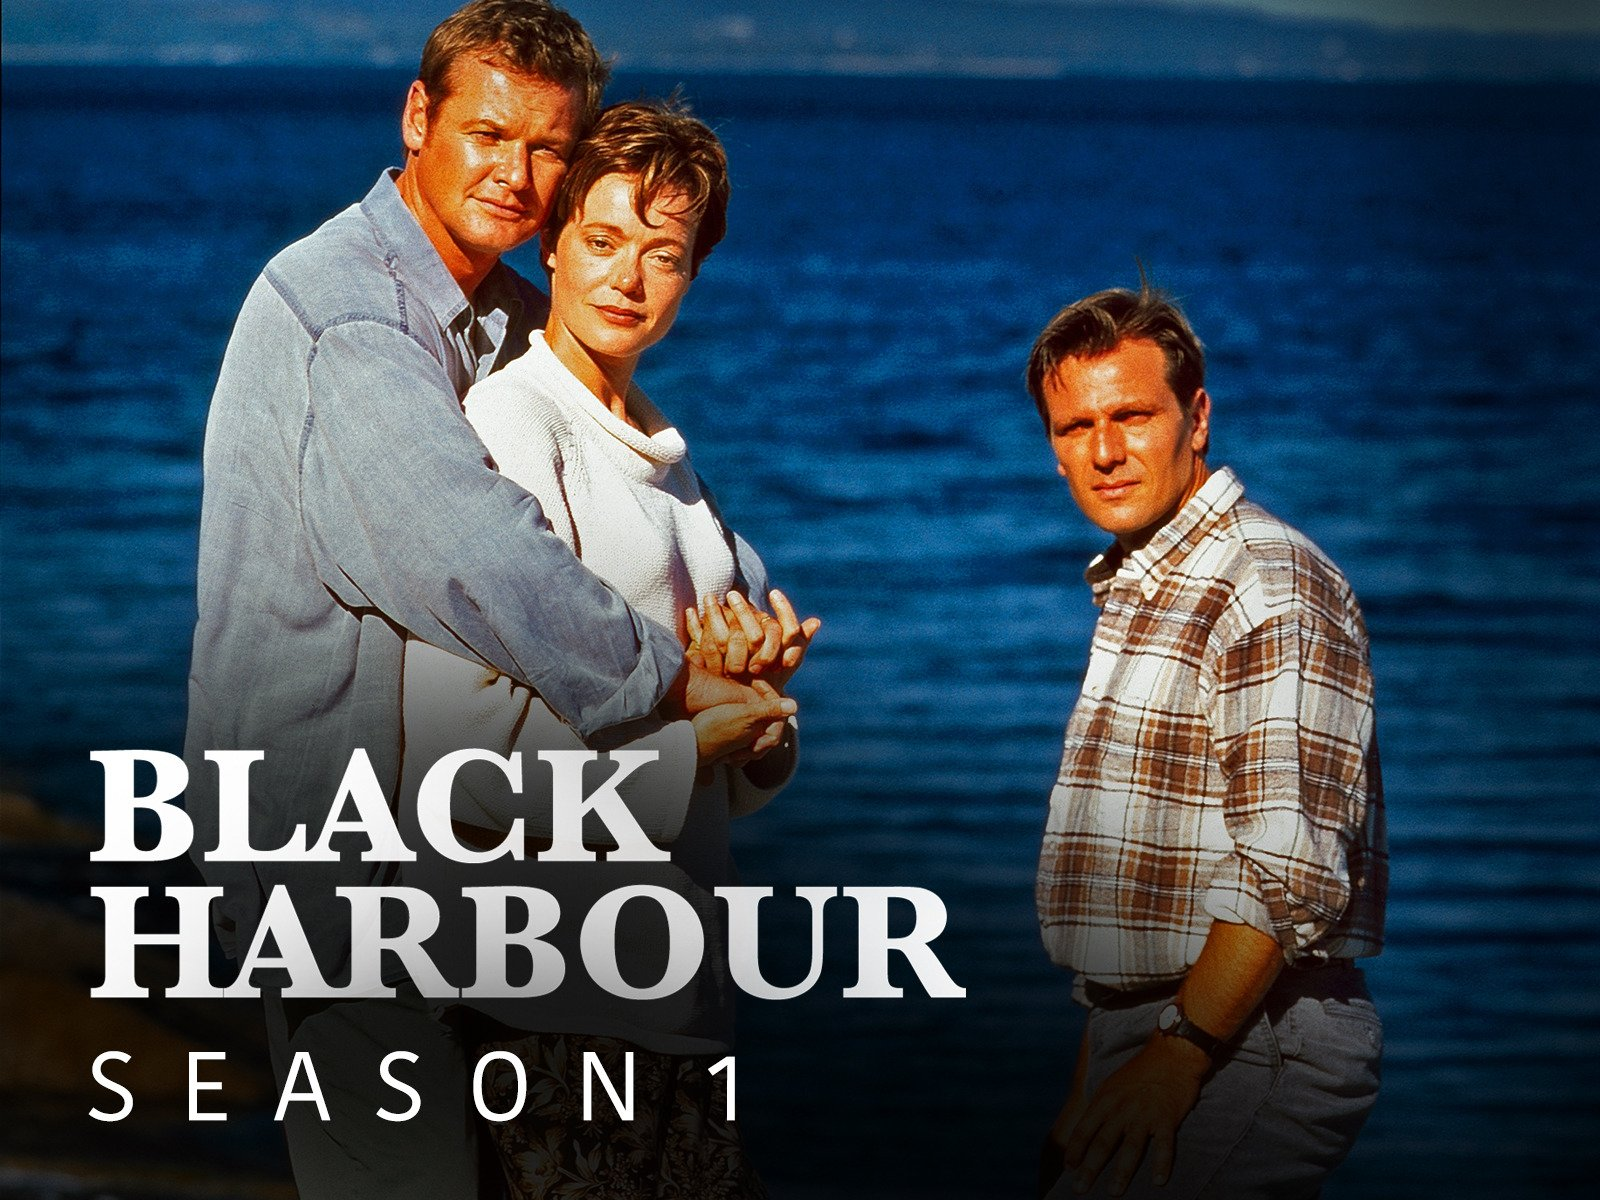 Black Harbour - Season 1